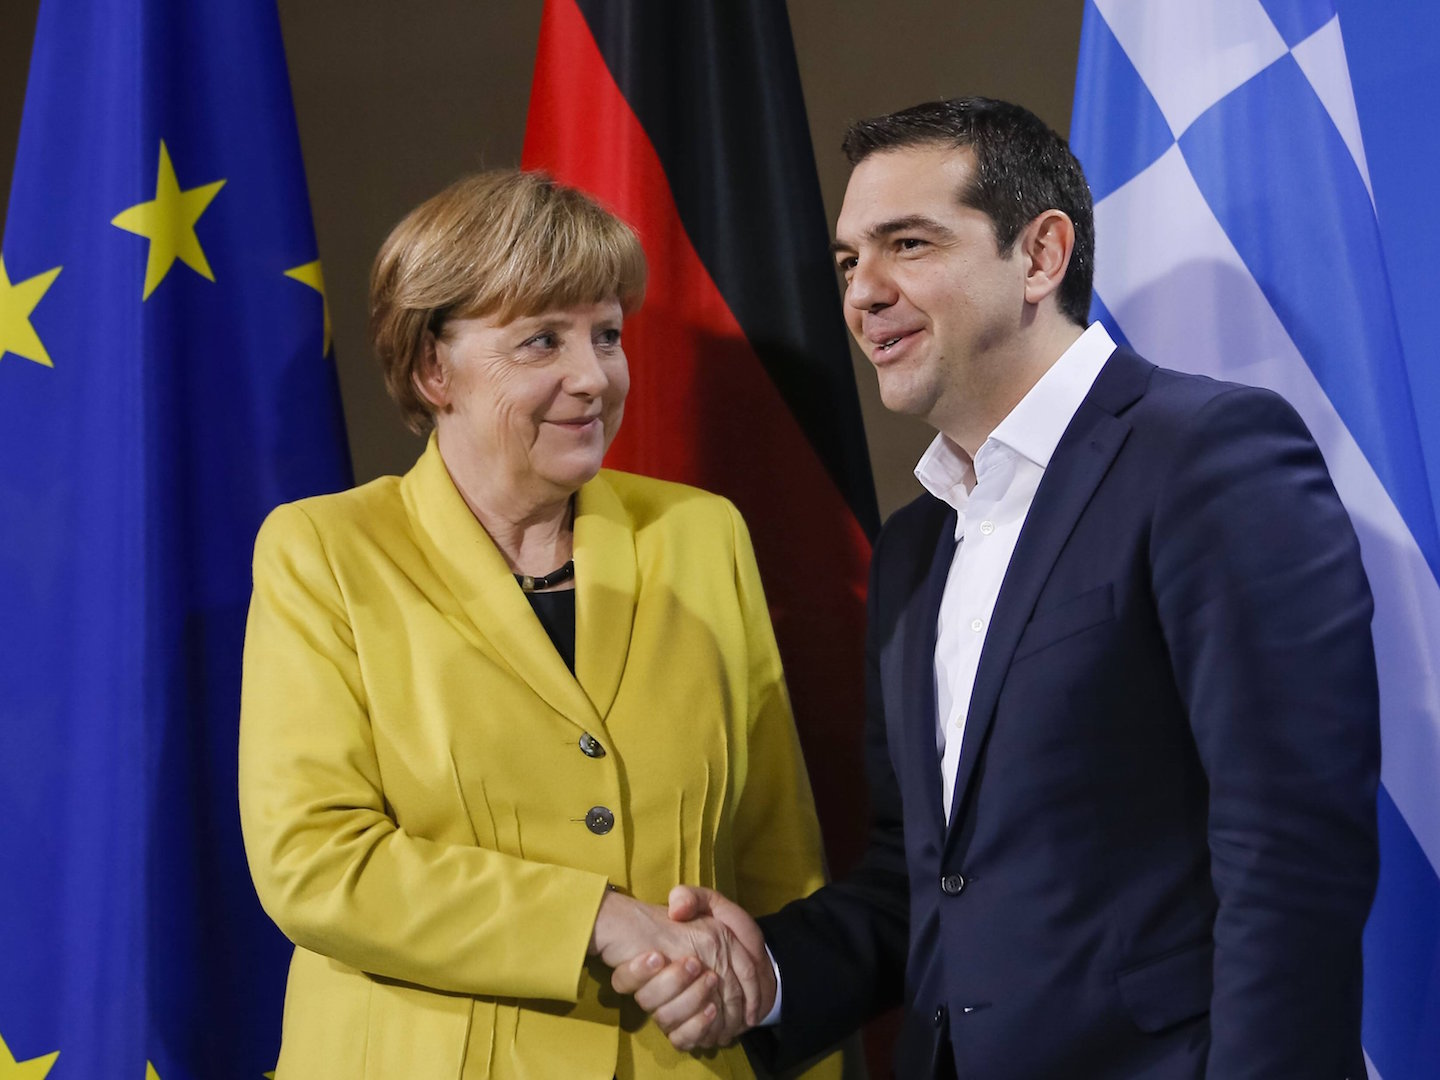 Athens-Berlin agreement under which Greece will take back refugees registered there